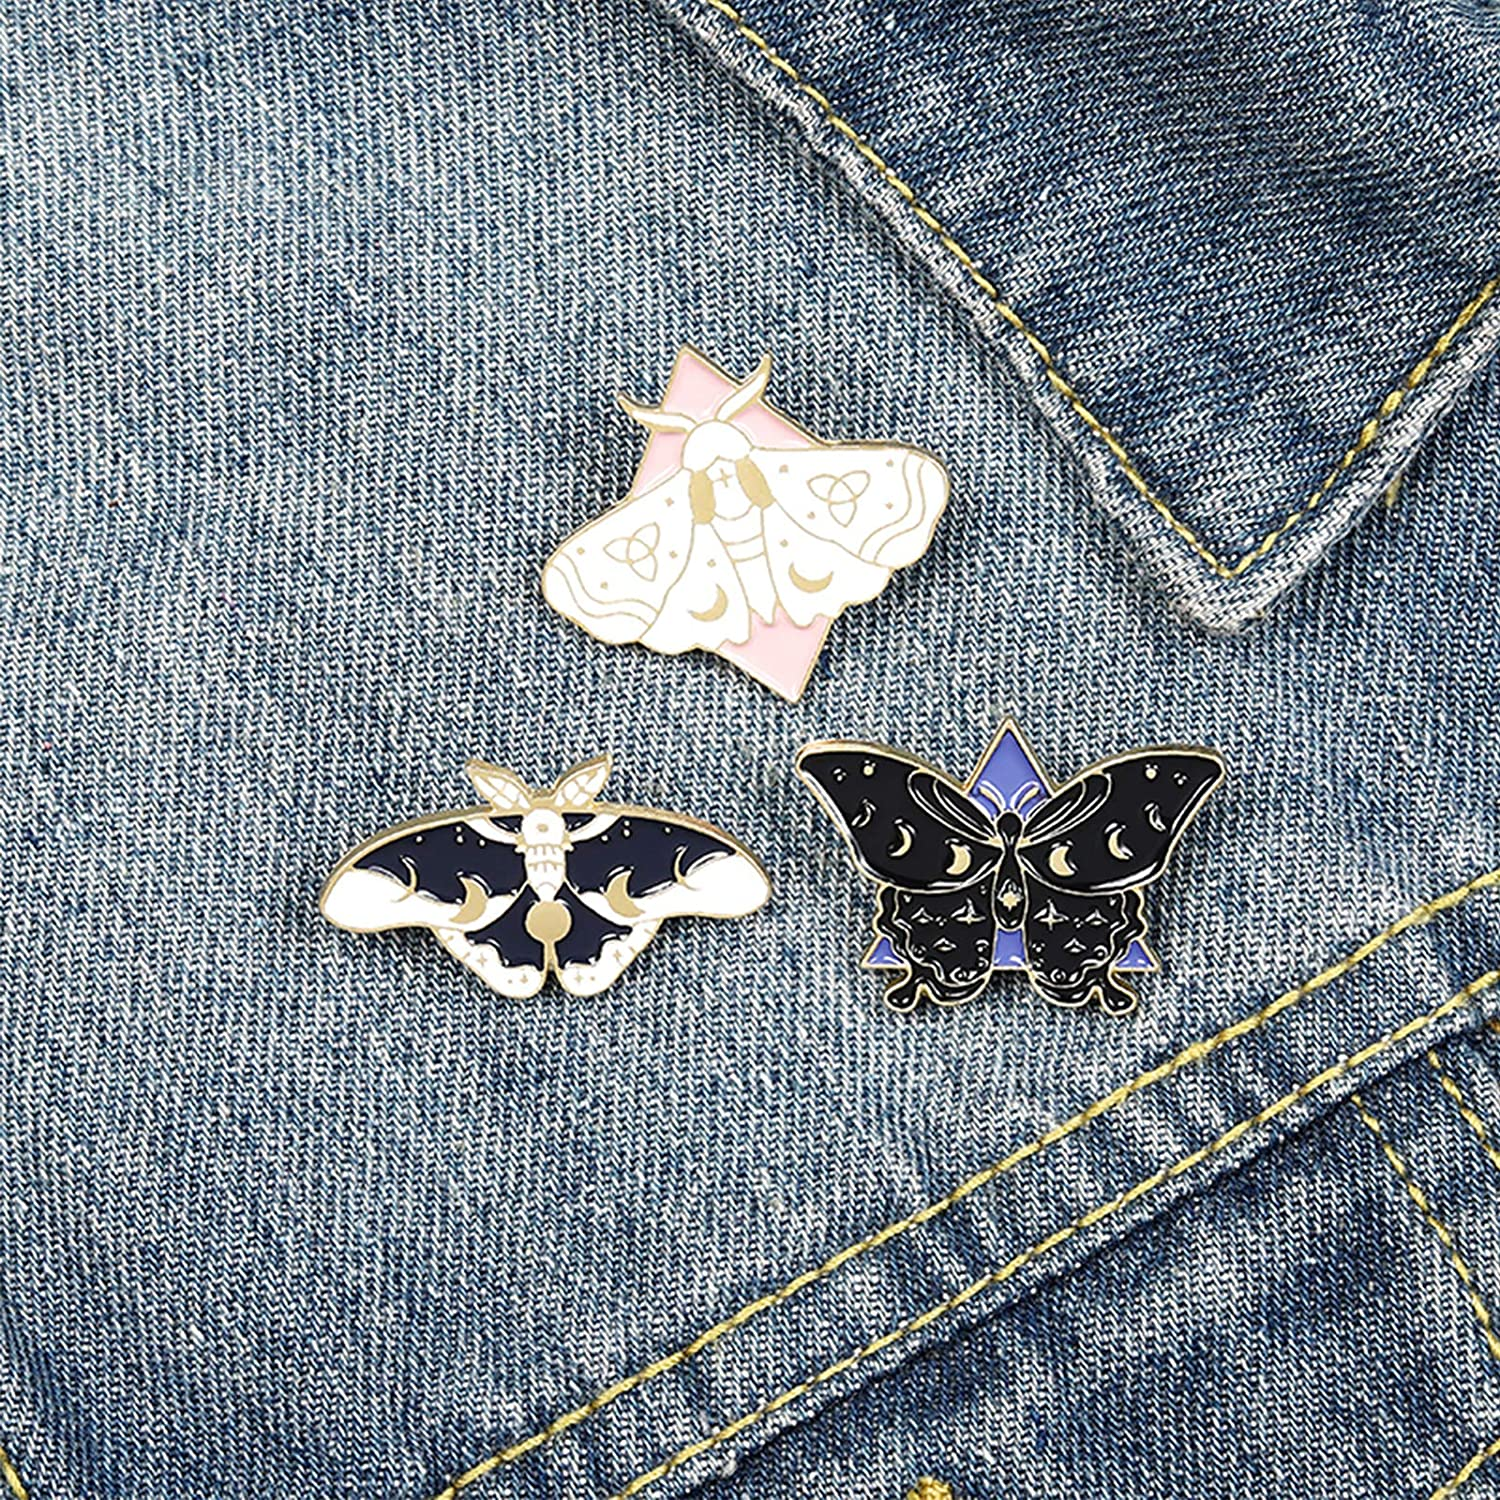 Butterfly Enamel Pins Set Cool Horror Enamel Lapel Pins Brooches for Backpacks Steampunk Badge Jewelry for Women